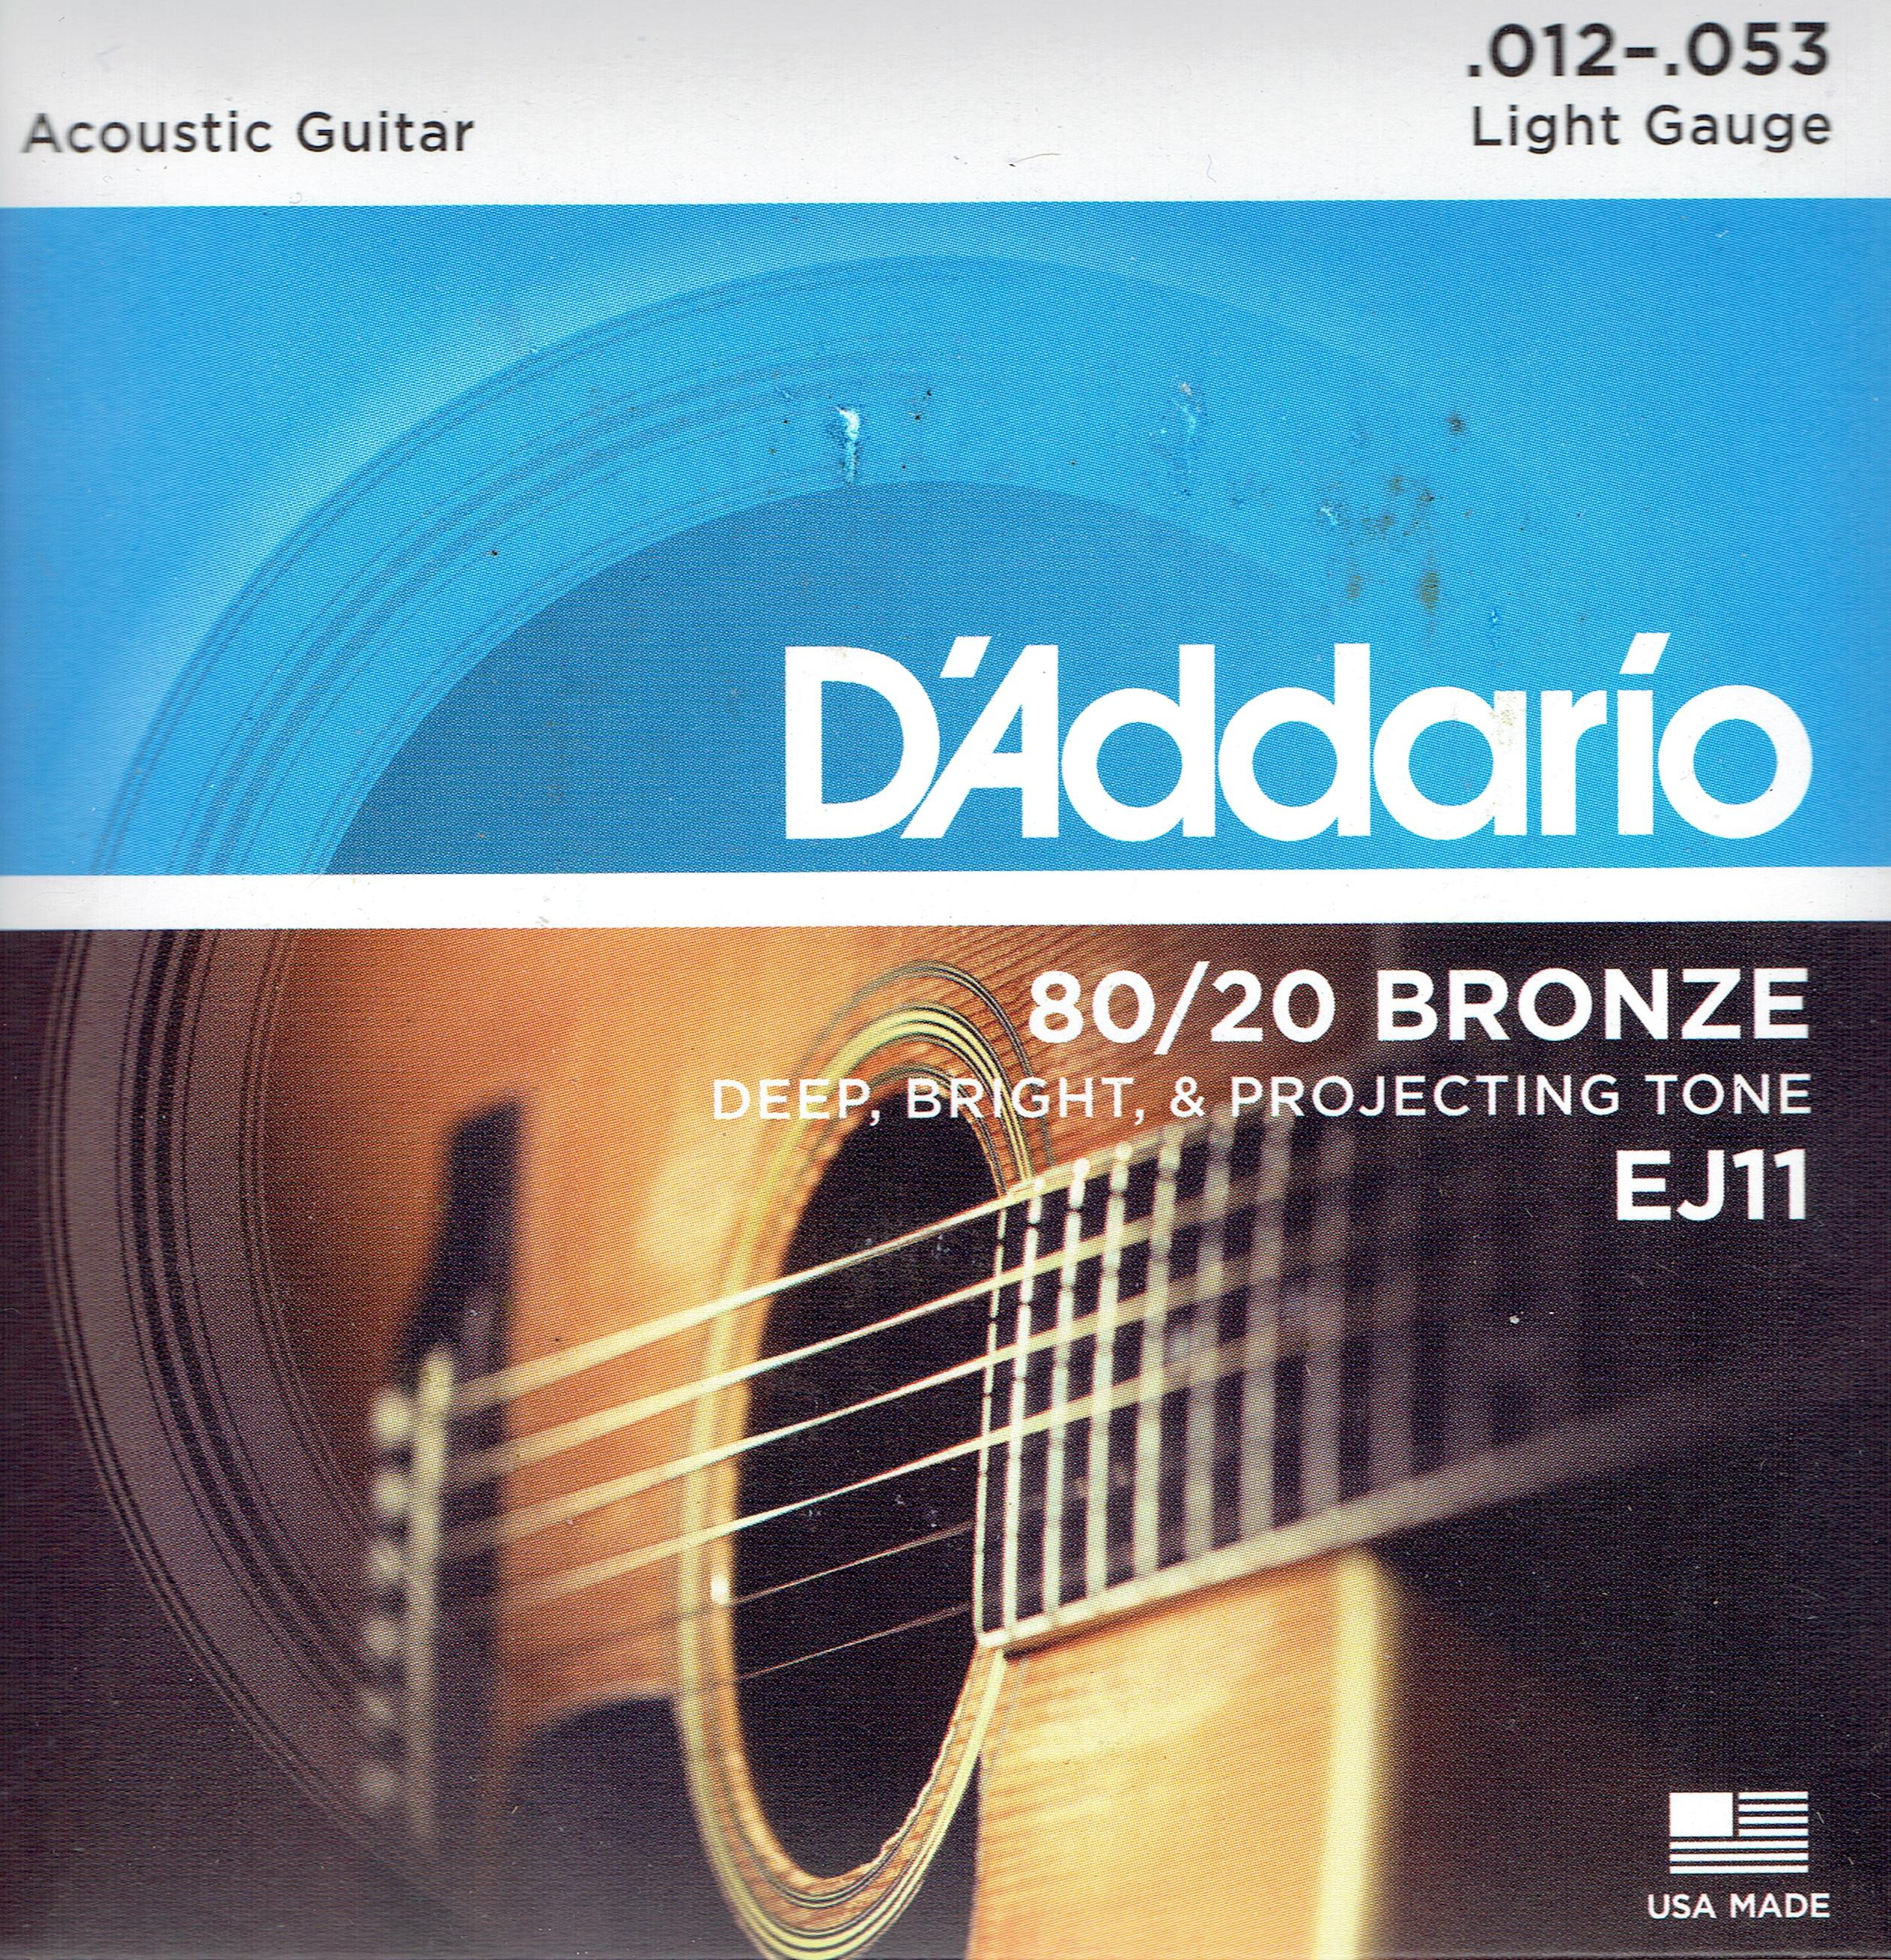 D'Addario 80/20 bronze acoustic guitar strings 12-53 EJ11